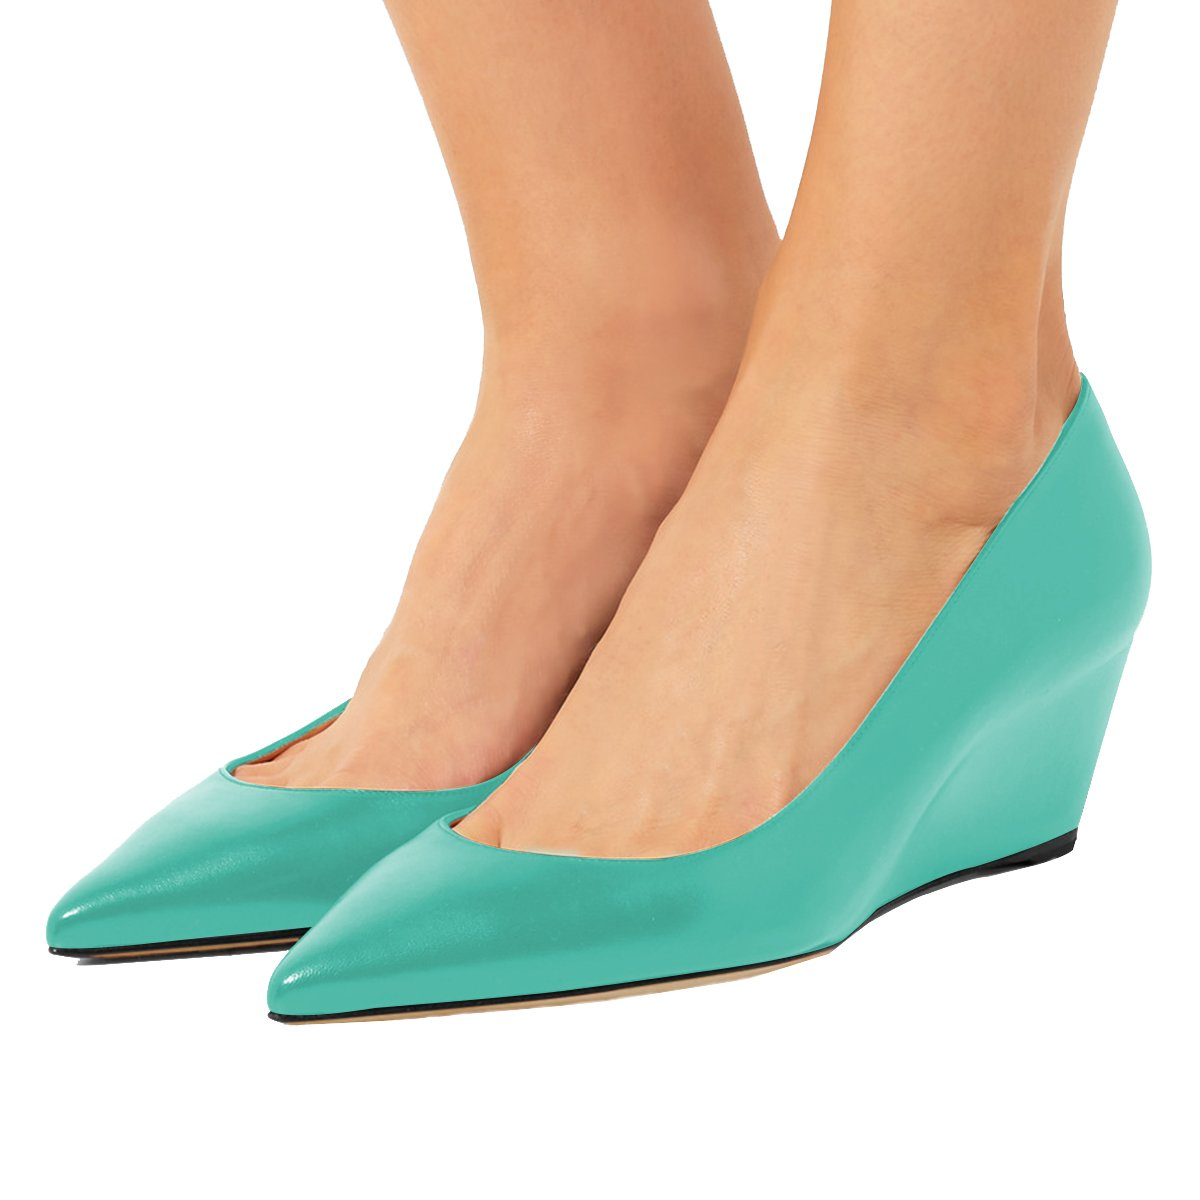 YDN Women Sexy Pointed Toe Hidden Low Heel Wedge Pumps Slip on Dress Shoes for Office Lady B07C2Y4Z58 5 B(M) US|Turquoise